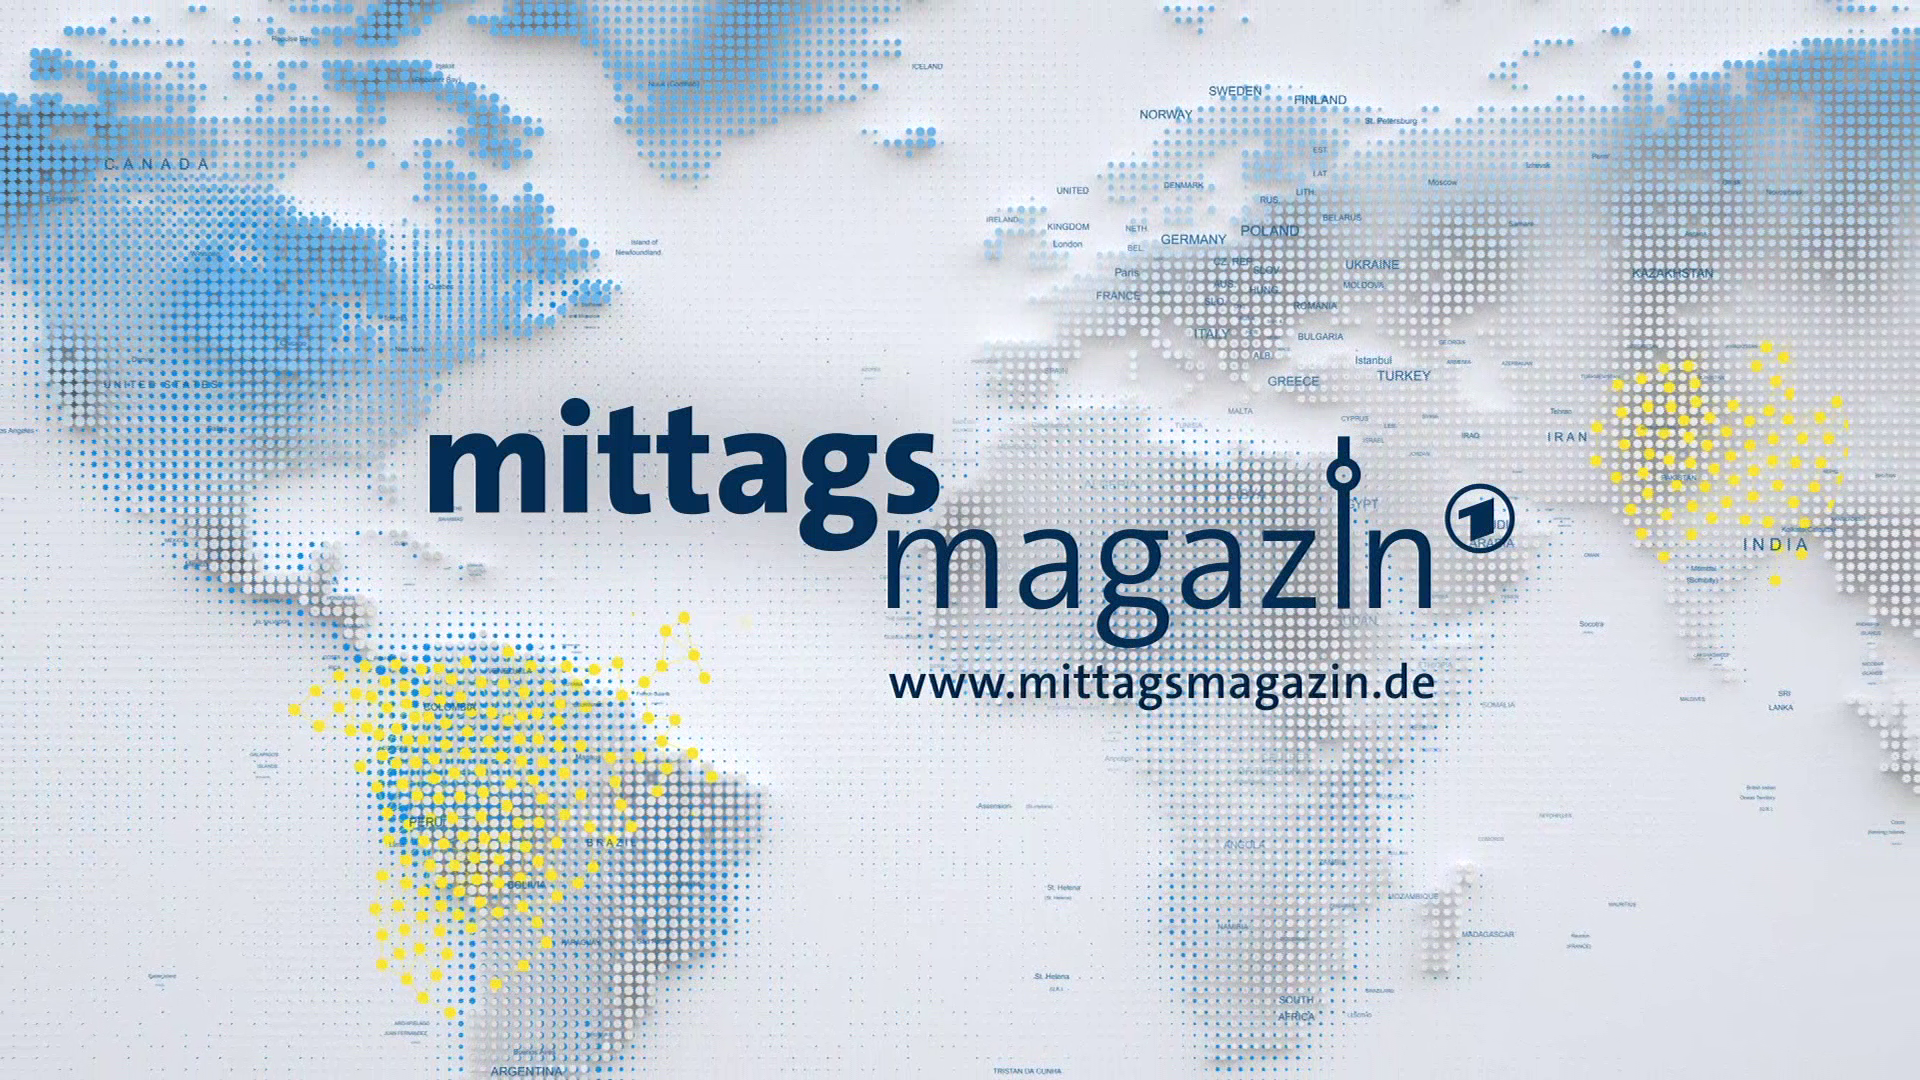 ARD Mittagsmagazin now from the middle of Berlin